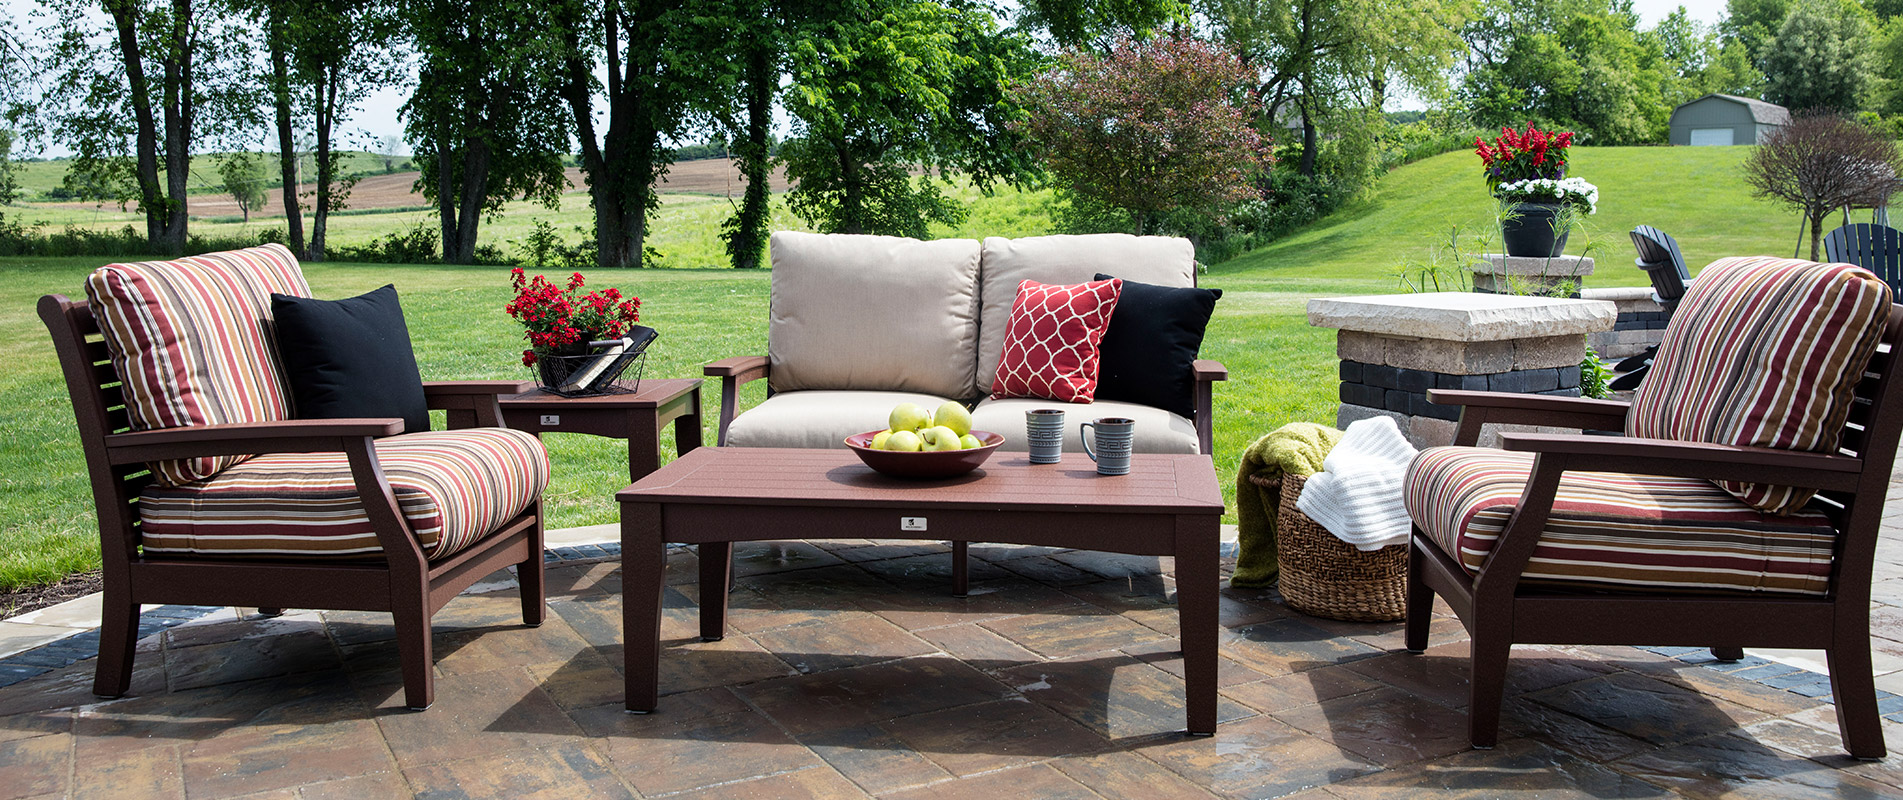 Patio Furniture Whitehall Pa. Wooden Green